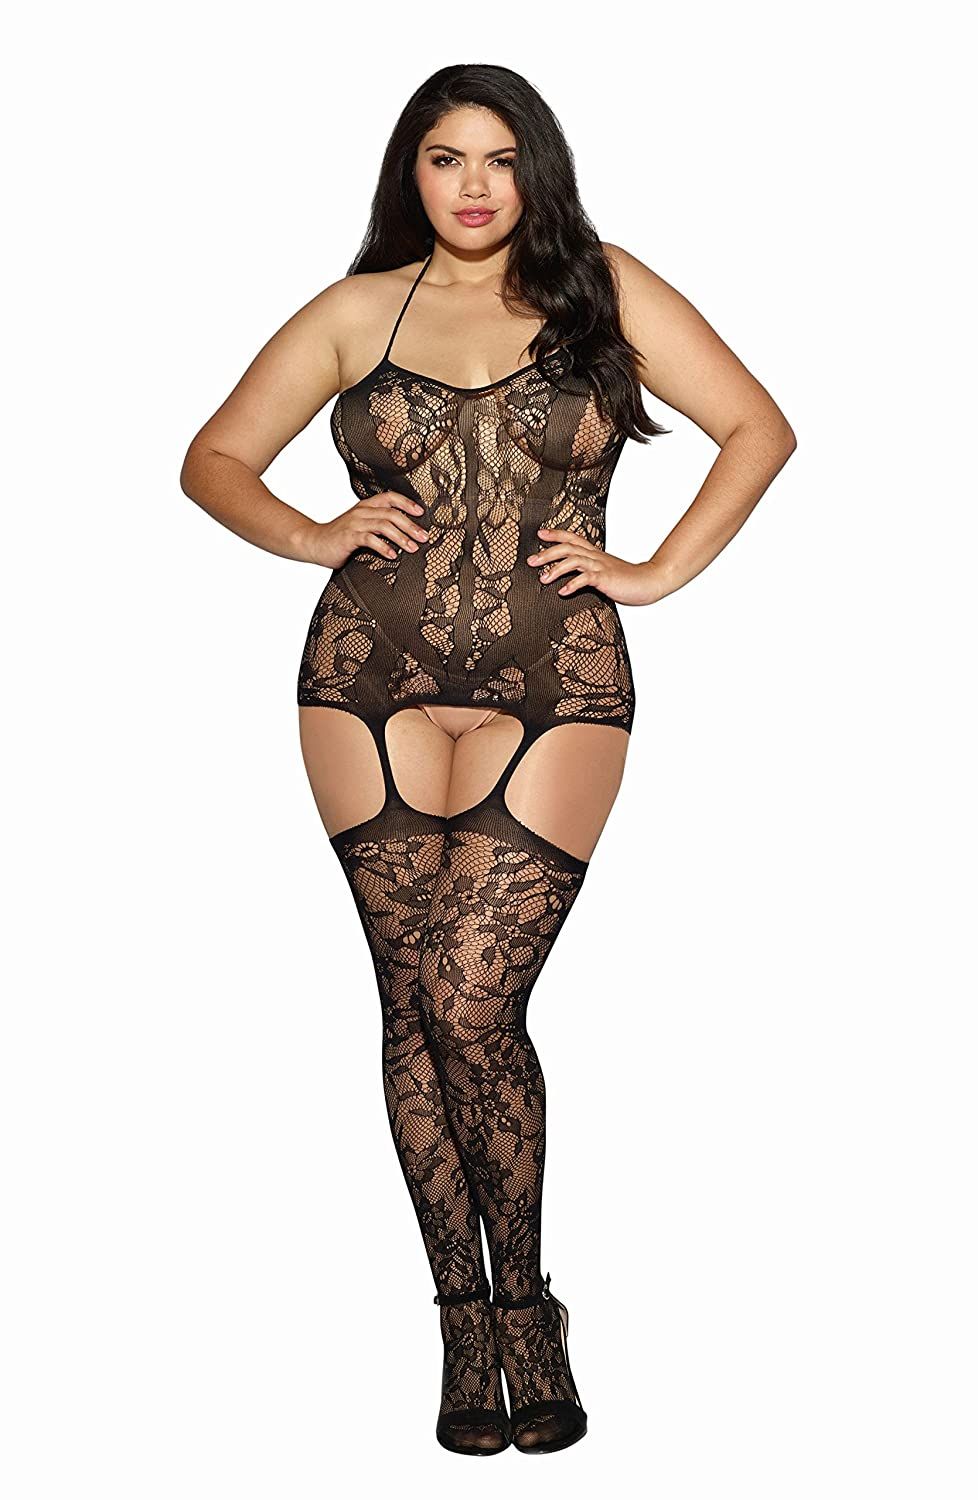 Dreamgirl Women's Plus-Size Trinidad Halter Garter Dress With Attached Stockings Black One Size Dreamgirl International 0145X